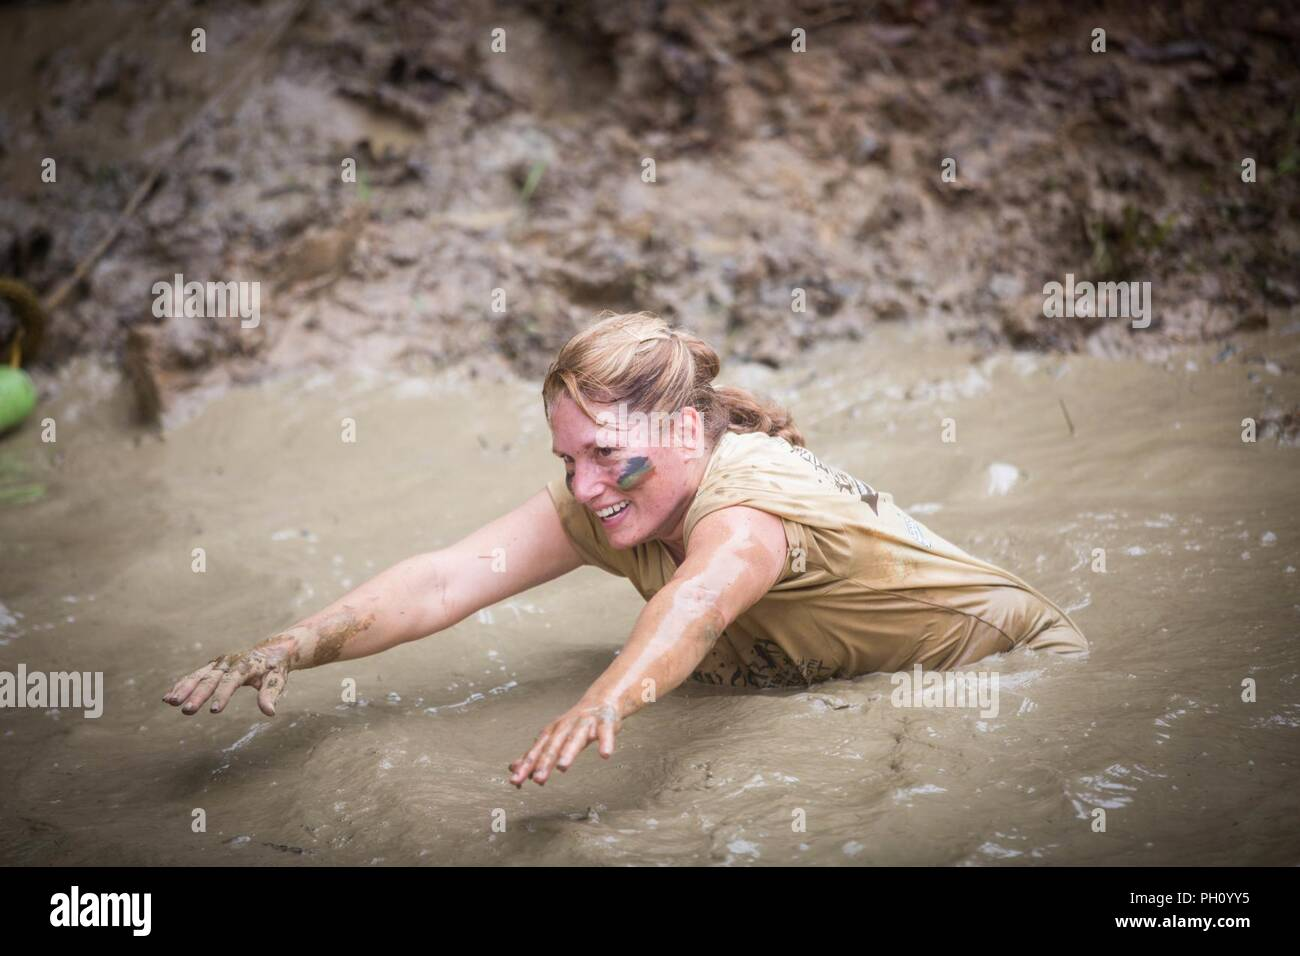 Participants run during the annual Marine Corps Marathon (MCM) Run Amuck at Marine Corps Base Quantico, Va., June 23, 2018. The Run Amuck is the MCM's messiest mud and obstacle course consisting of a four-mile trail with 21 challenges to include body weight exercises, rope climbs, and mud pits. - Stock Image